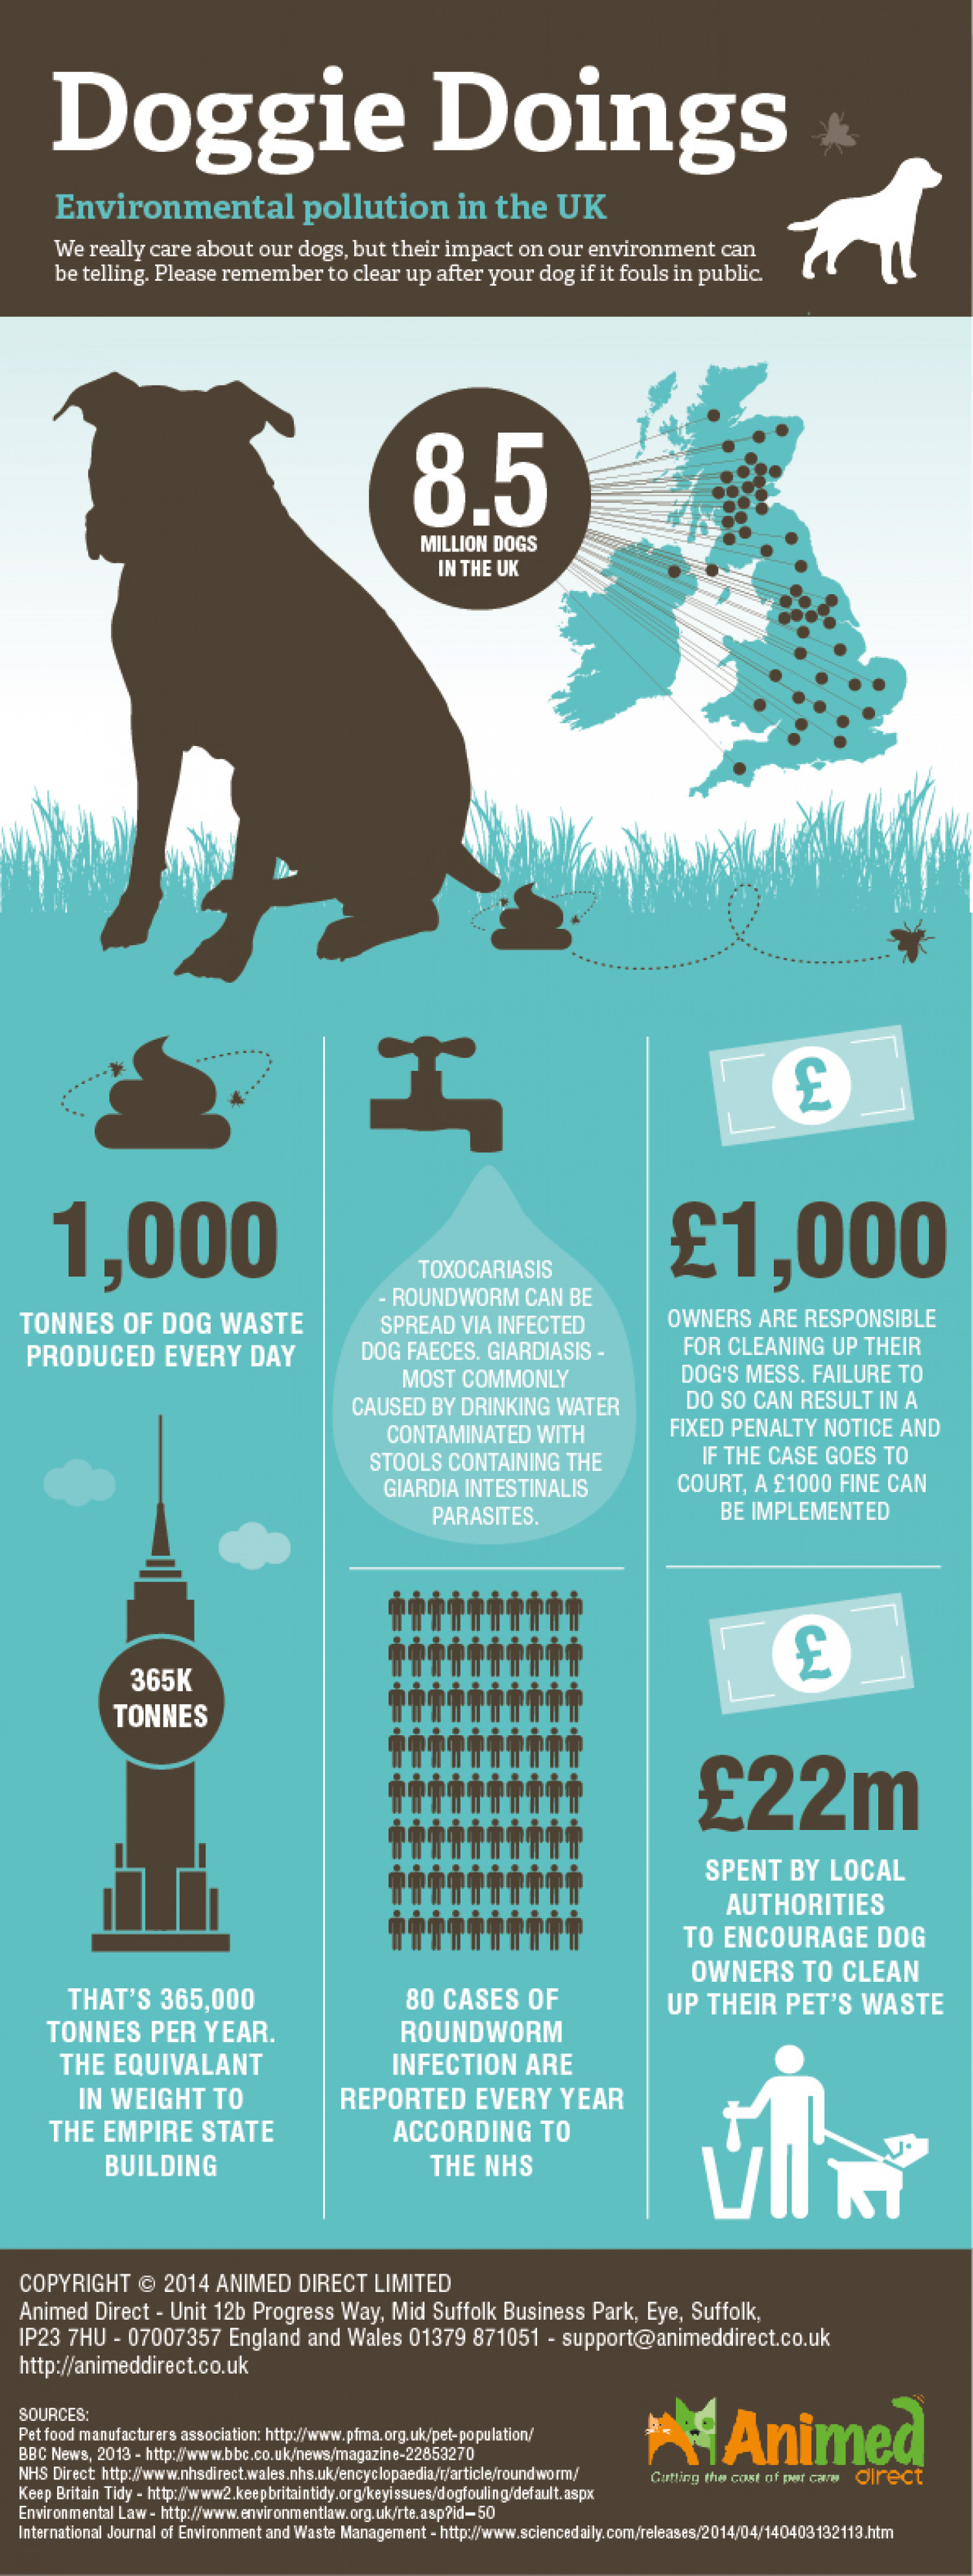 Doggie Doings: Environmental Pollution in the UK Infographic